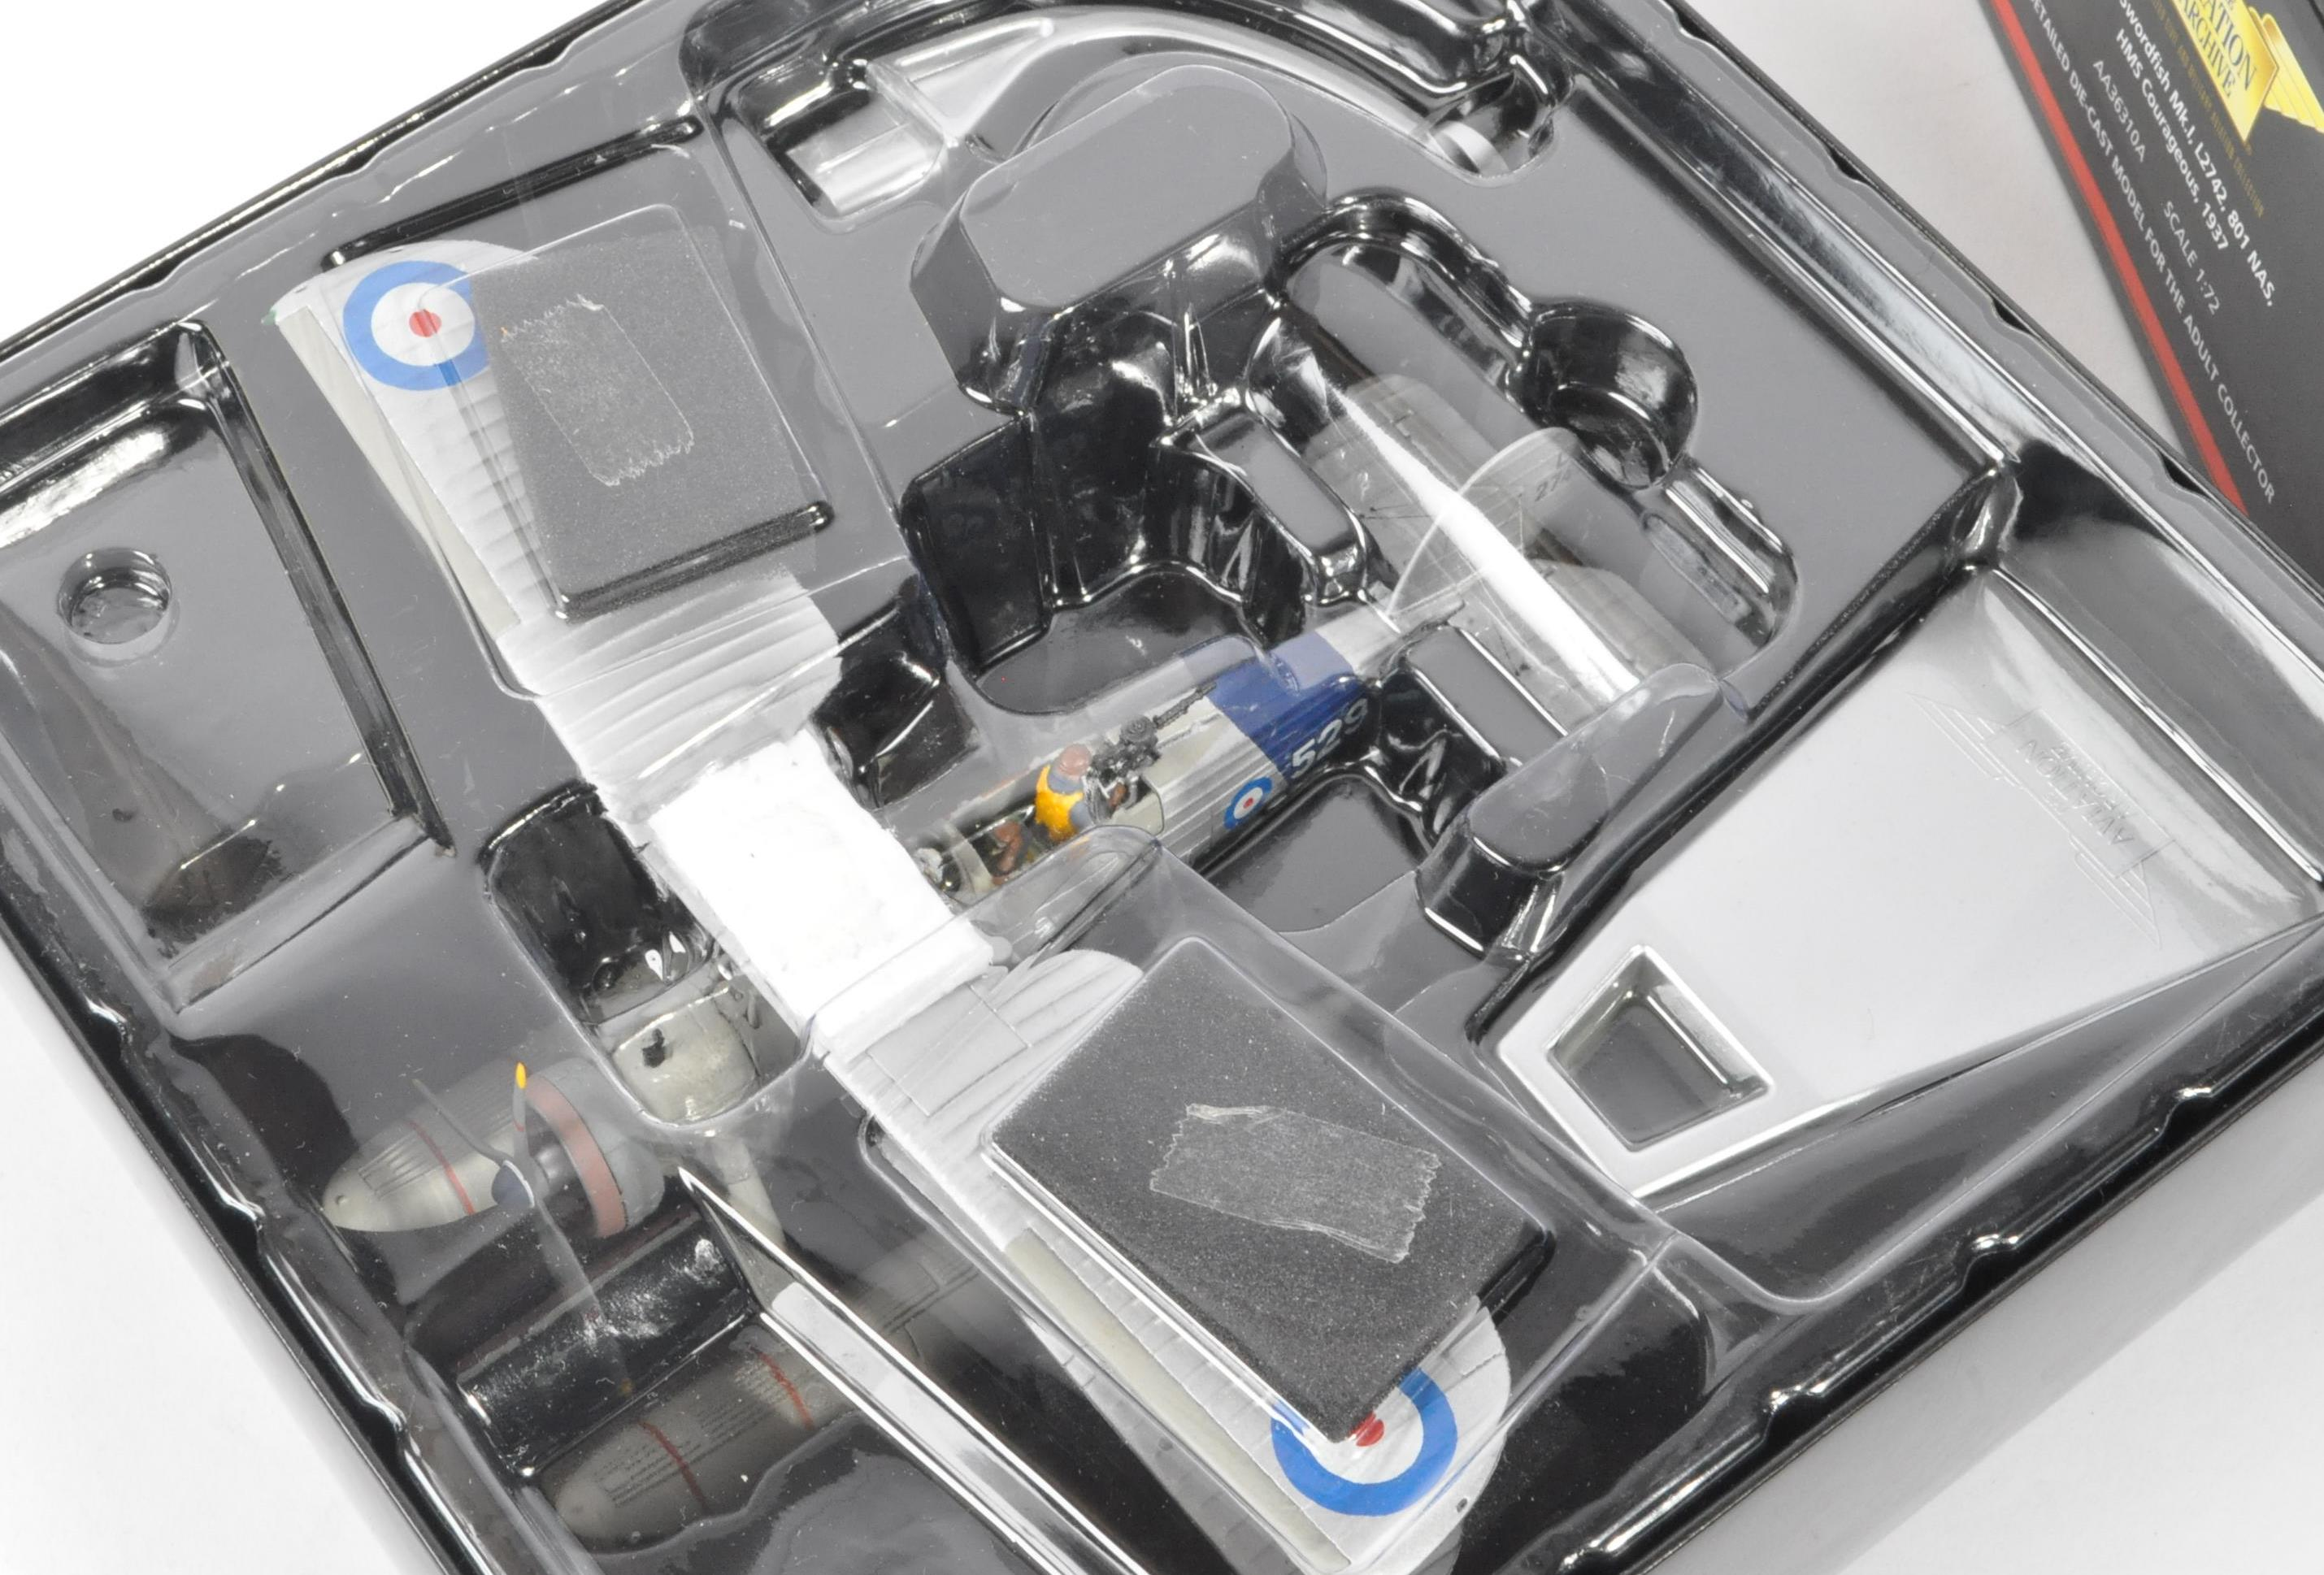 CORGI AVIATION ARCHIVE - AA36310A BOXED DIECAST MODEL PLANE - Image 3 of 4